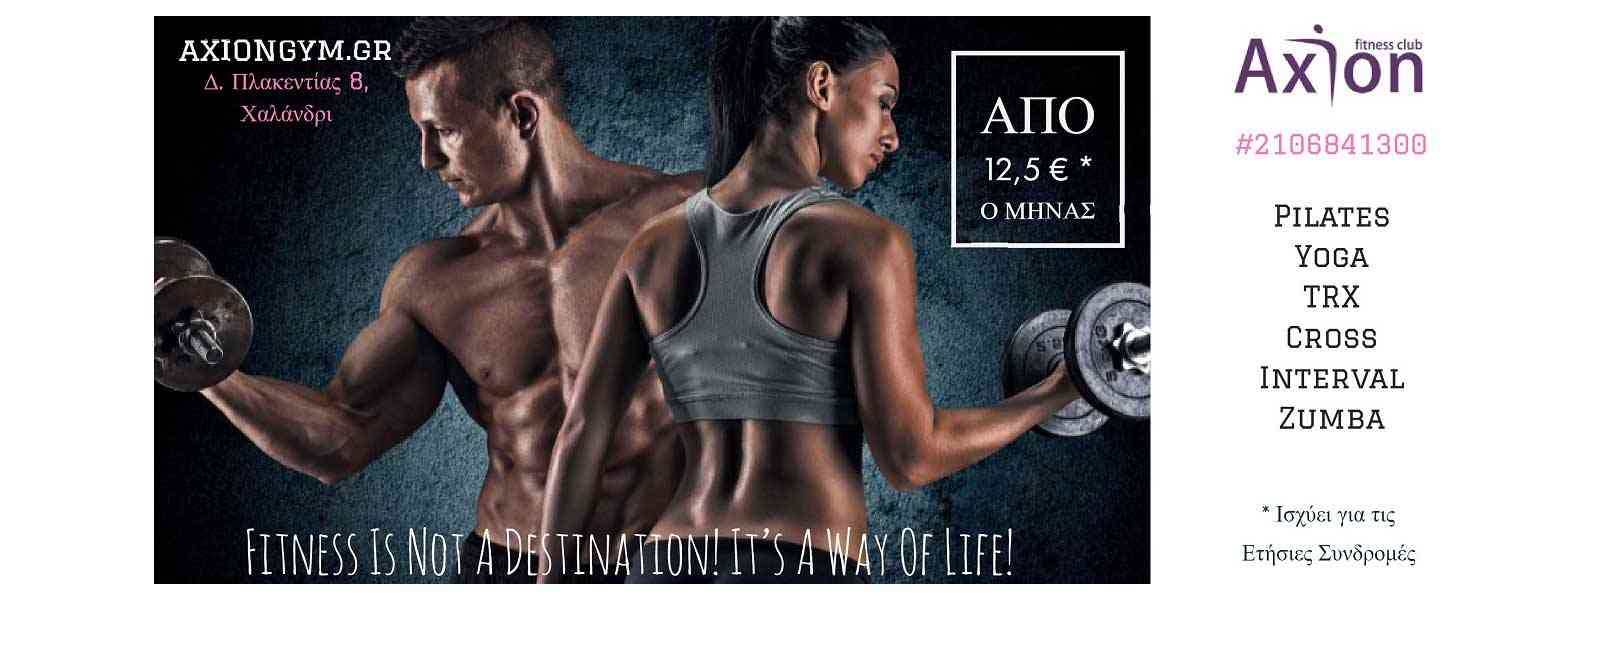 A Man and a Woman body building in AxionGym in Halandri